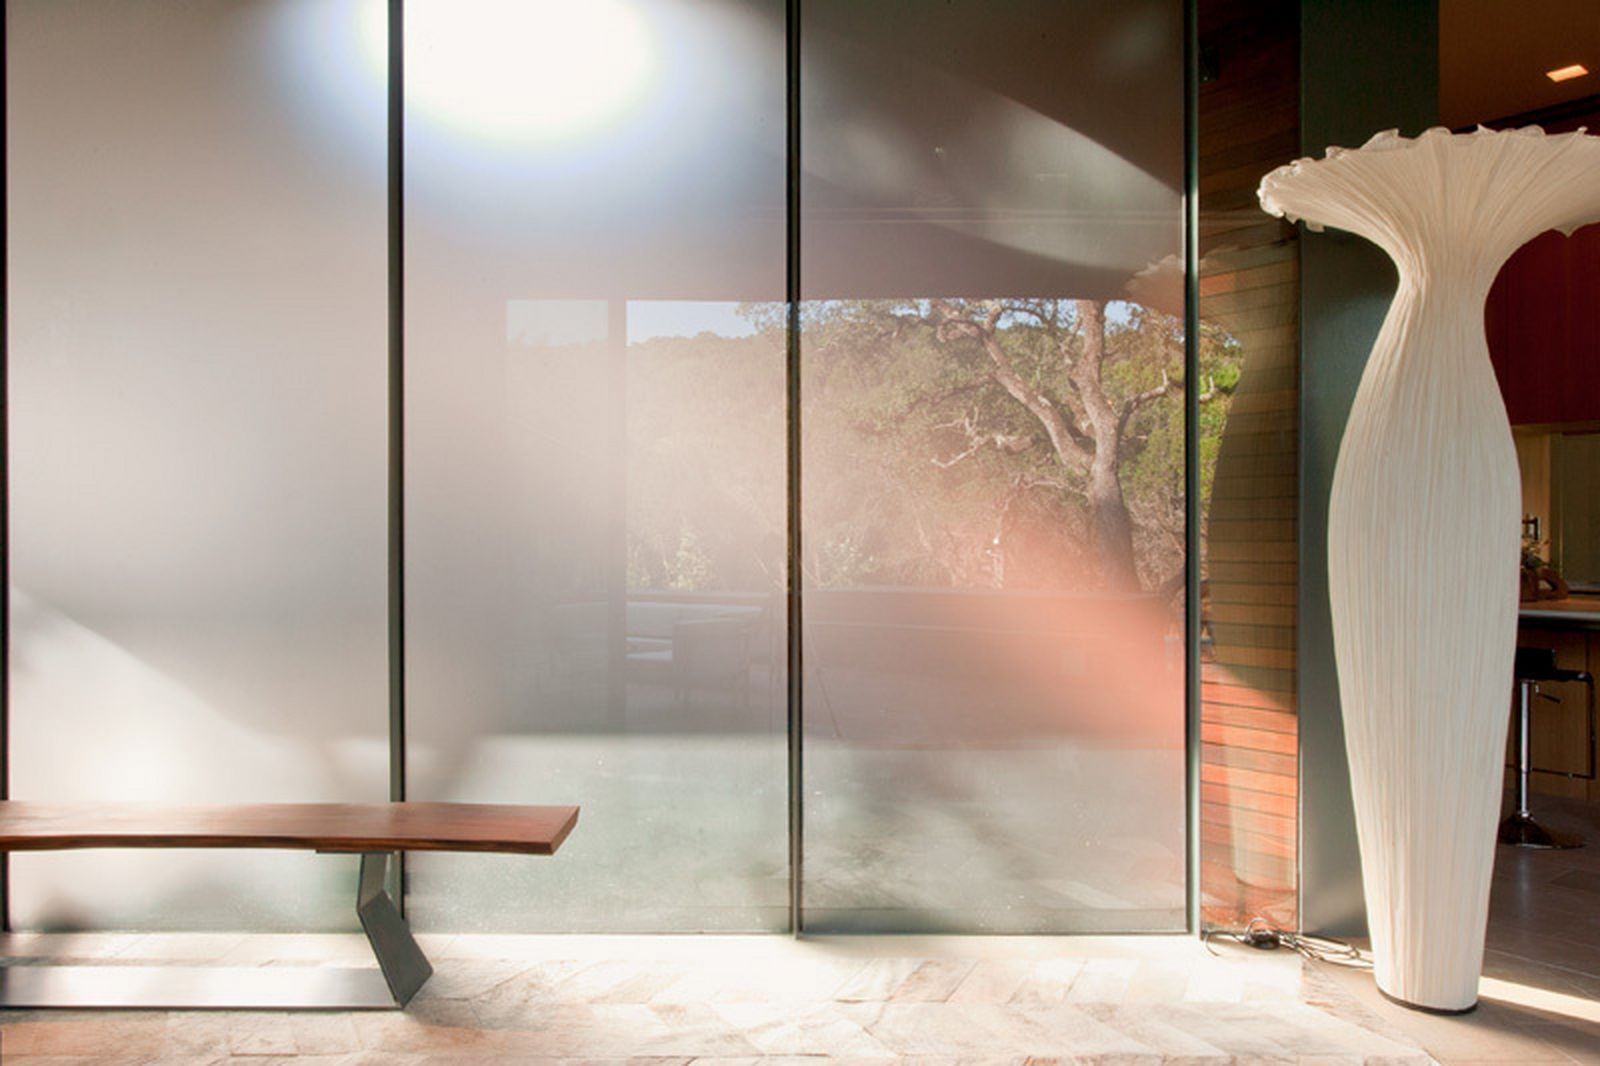 transparent wall panels. Frosted Glass Panels. Pros: The Semi-transparent Material Allows For Visual Partition Without Transparent Wall Panels A